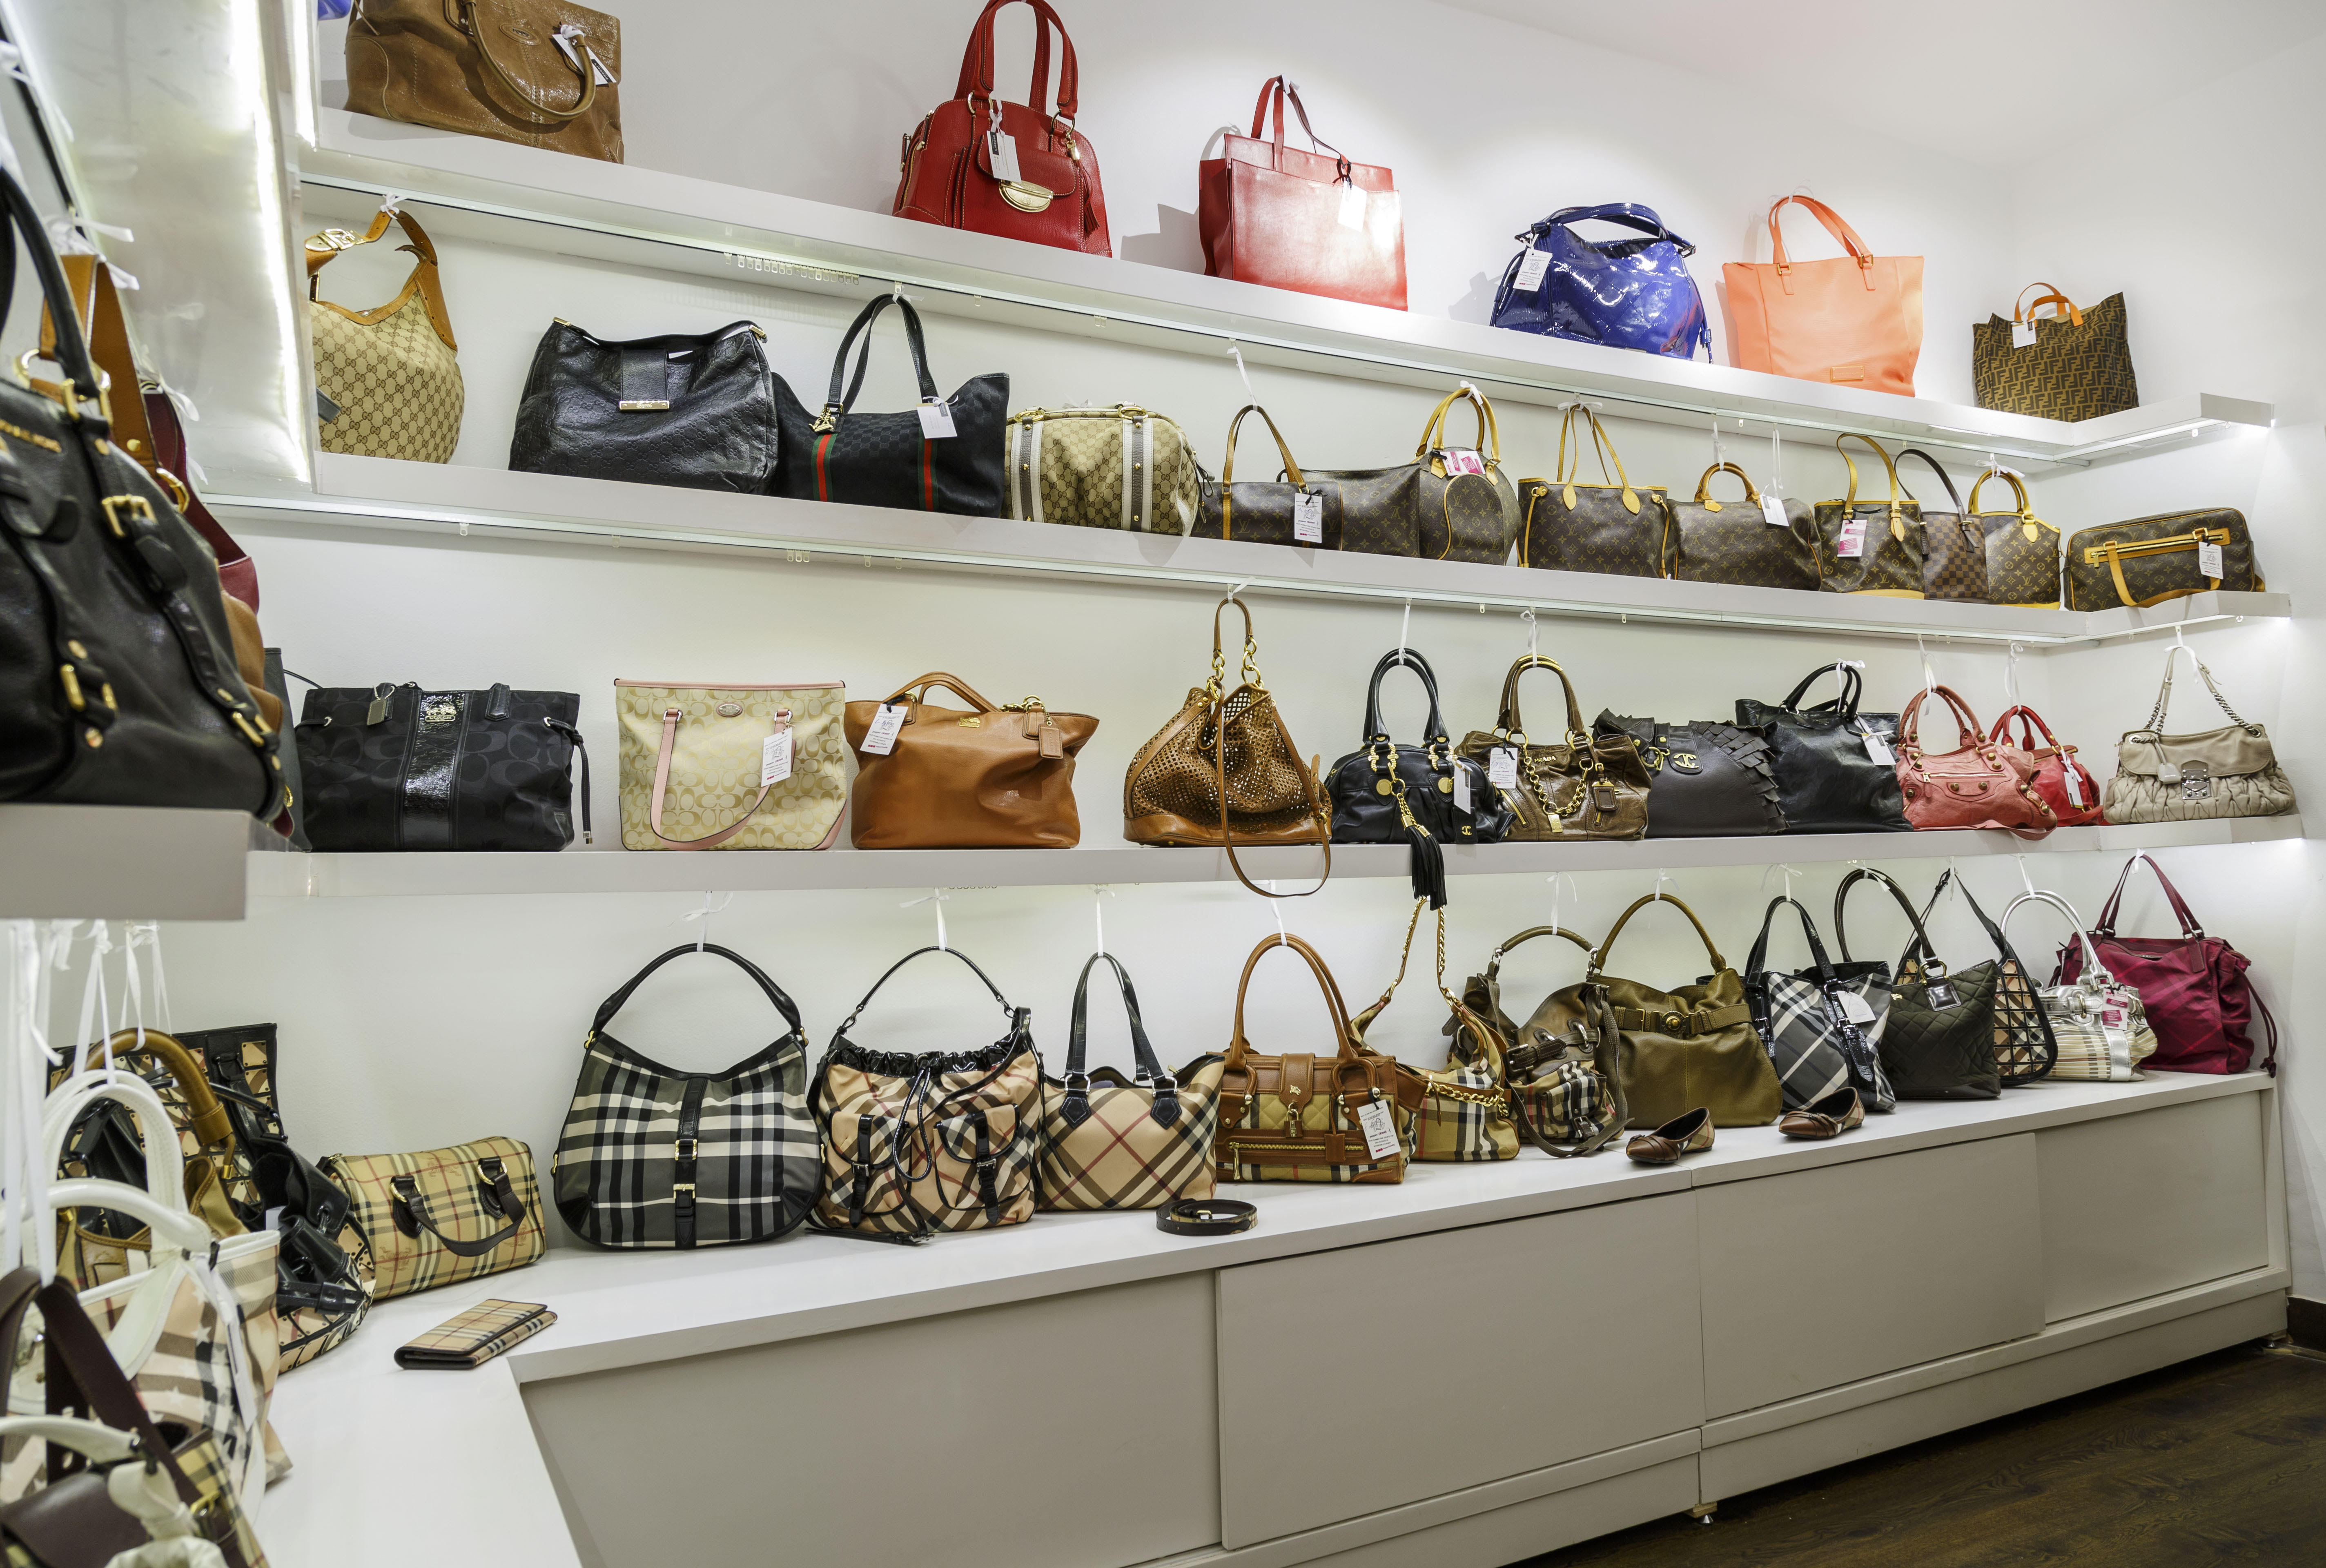 We Talked To The Owner And Managing Director Of Pepperu0027s Luxury Closet, May  Ezz El Din, To Get The Inside Scoop Of What Itu0027s Actually Like To Be  Operating A ...